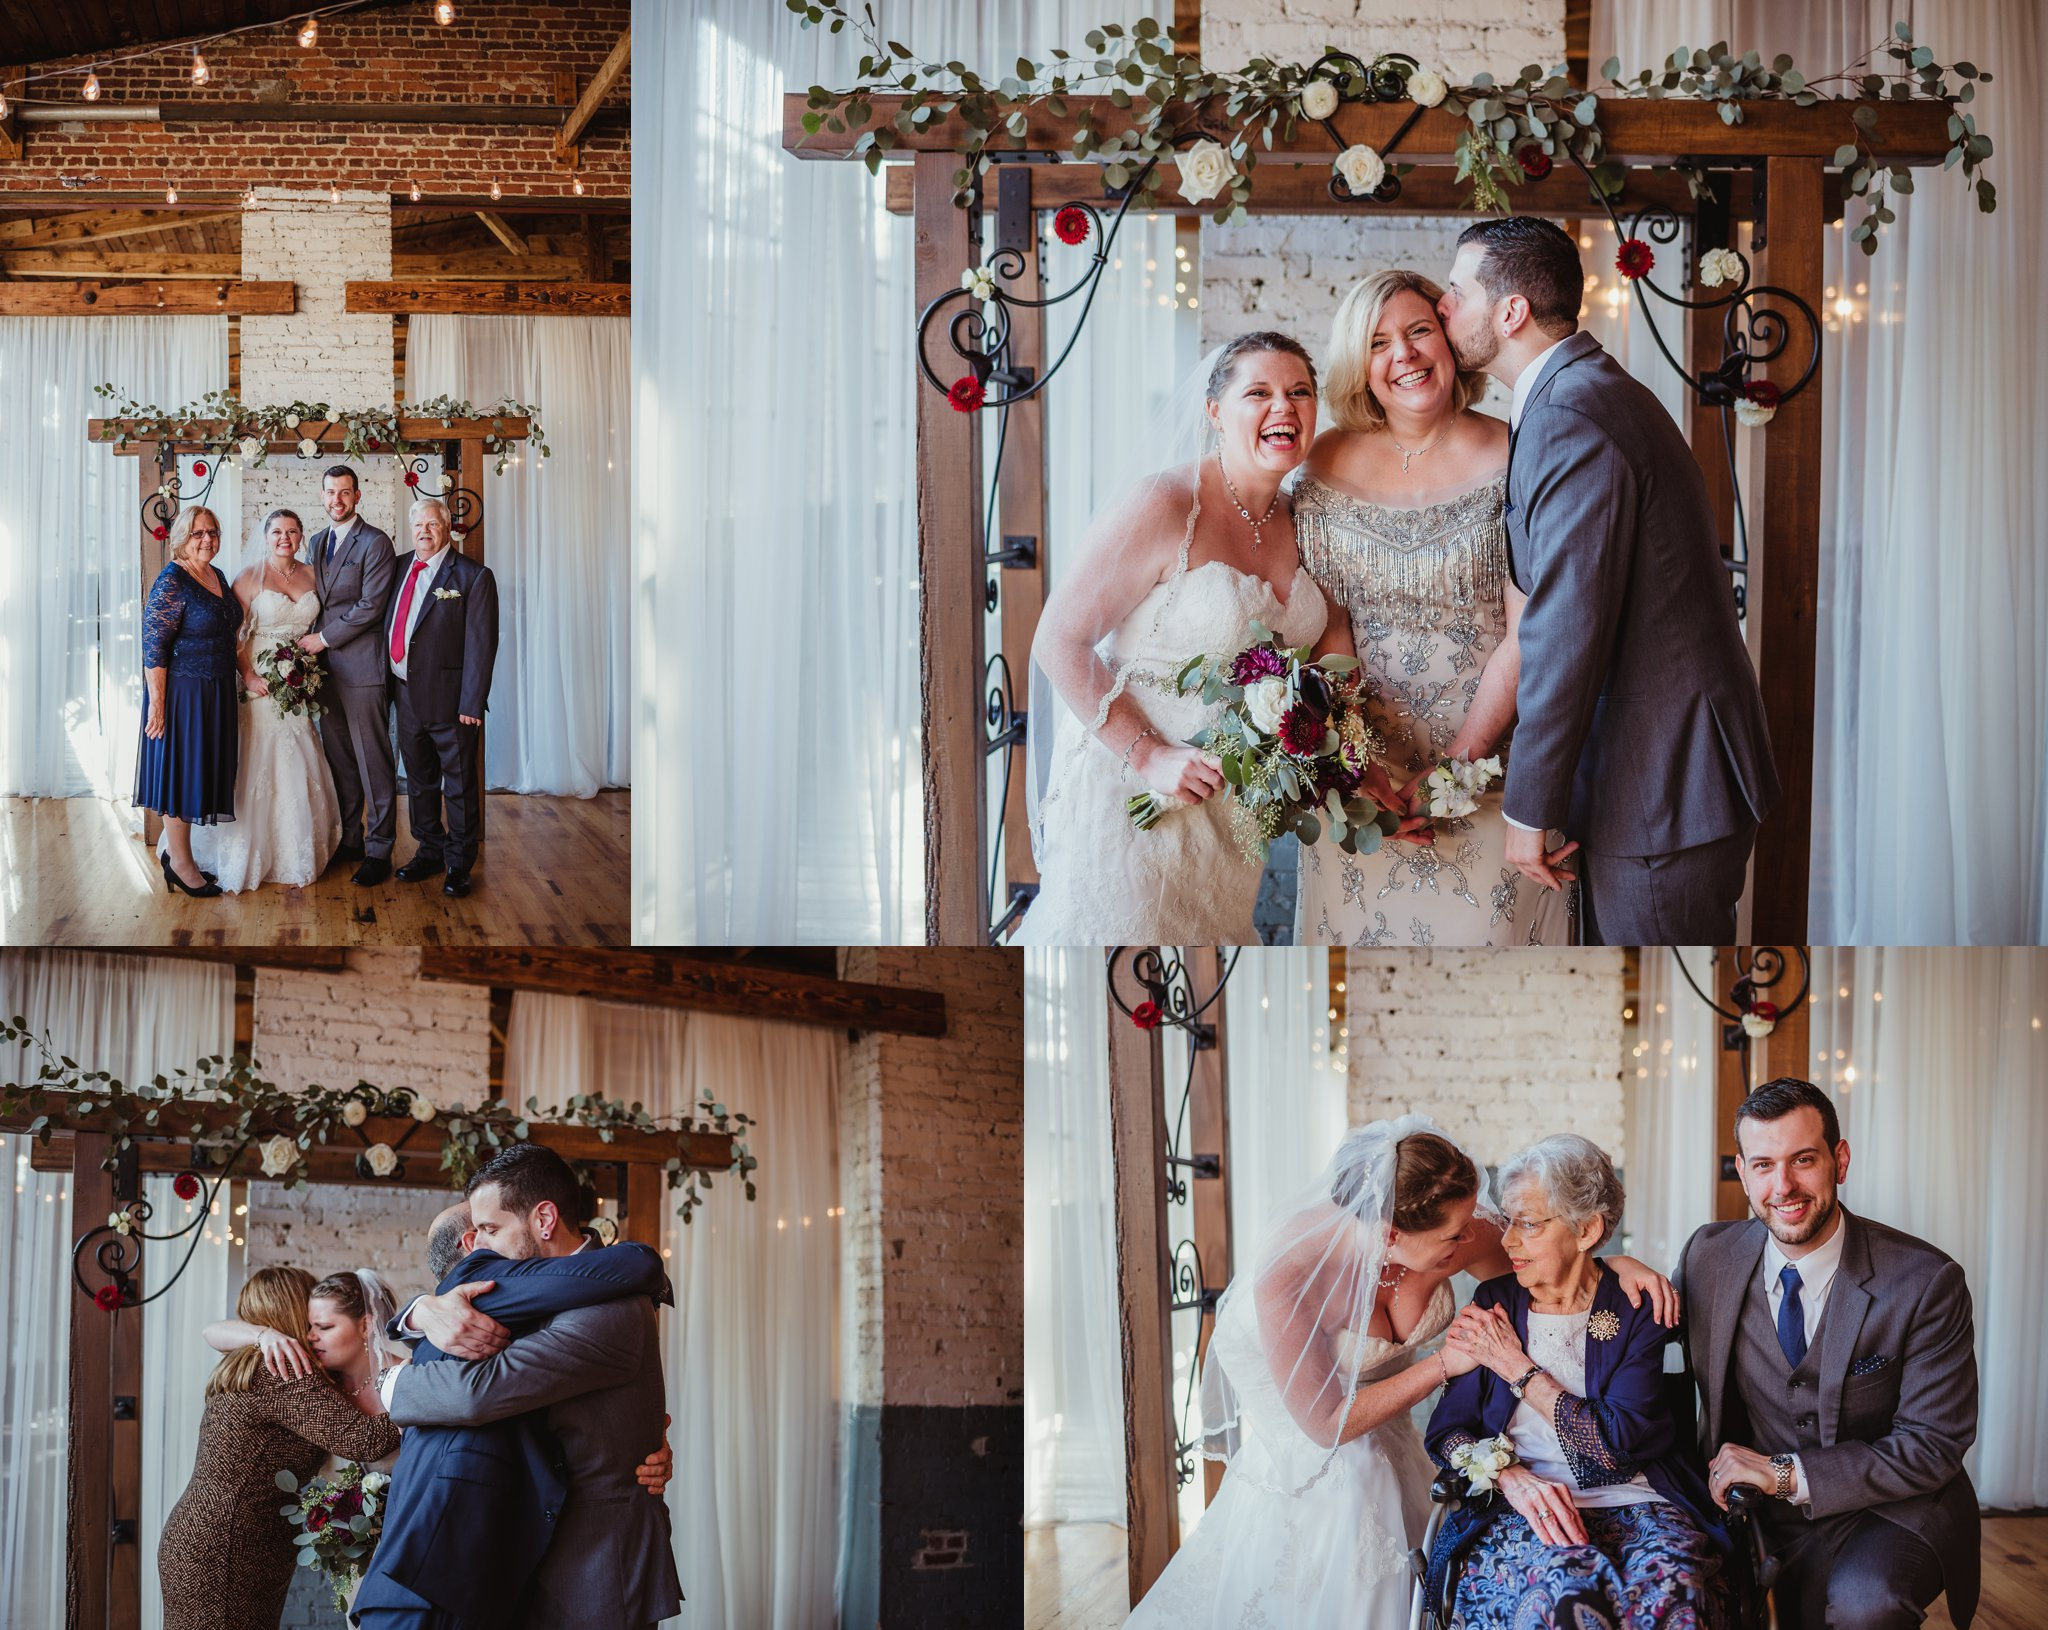 The bride and groom take family portraits after their wedding ceremony in Raleigh, North Carolina, pictures by Rose Trail Images.